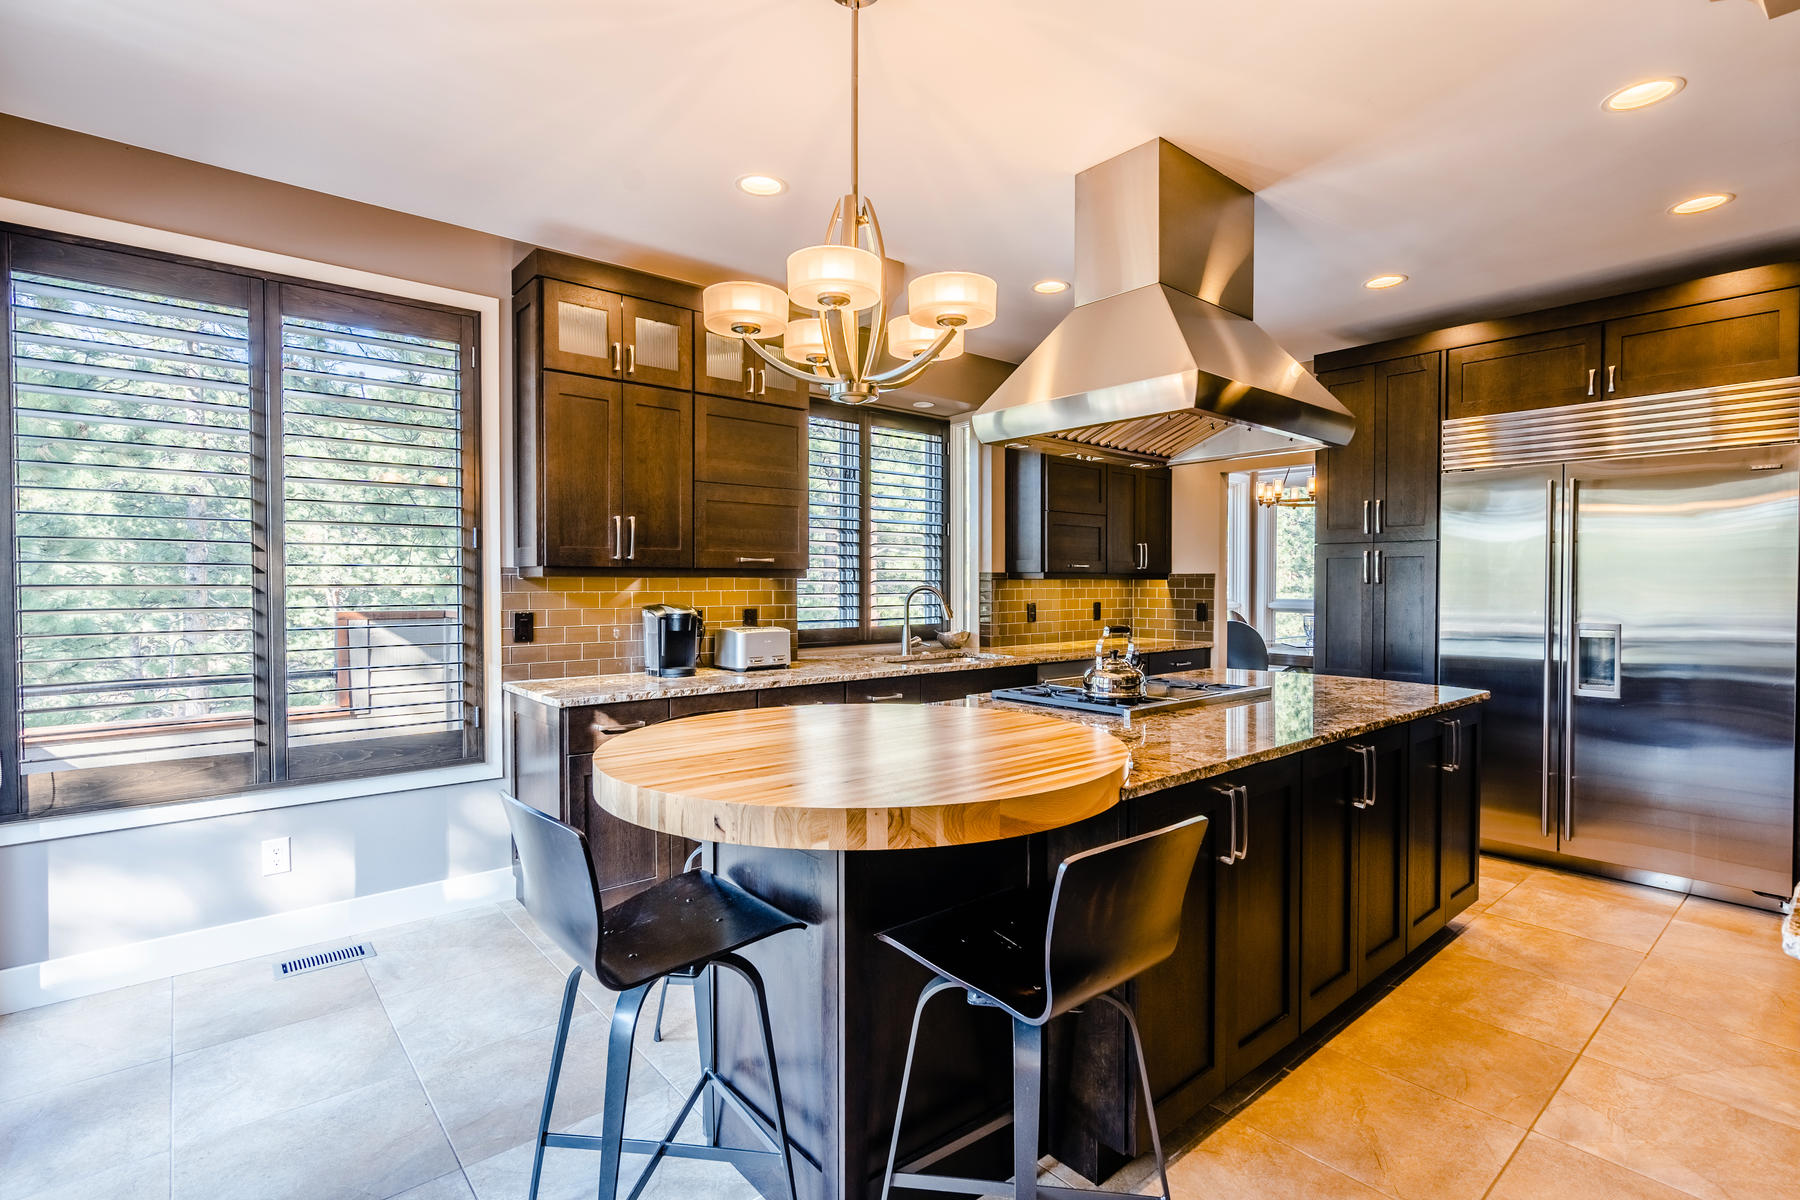 Single Family Homes for Sale at Exquisite, Remodeled Home on a Private 1.07 Acre Lot 2441 Juniper Court Golden, Colorado 80401 United States